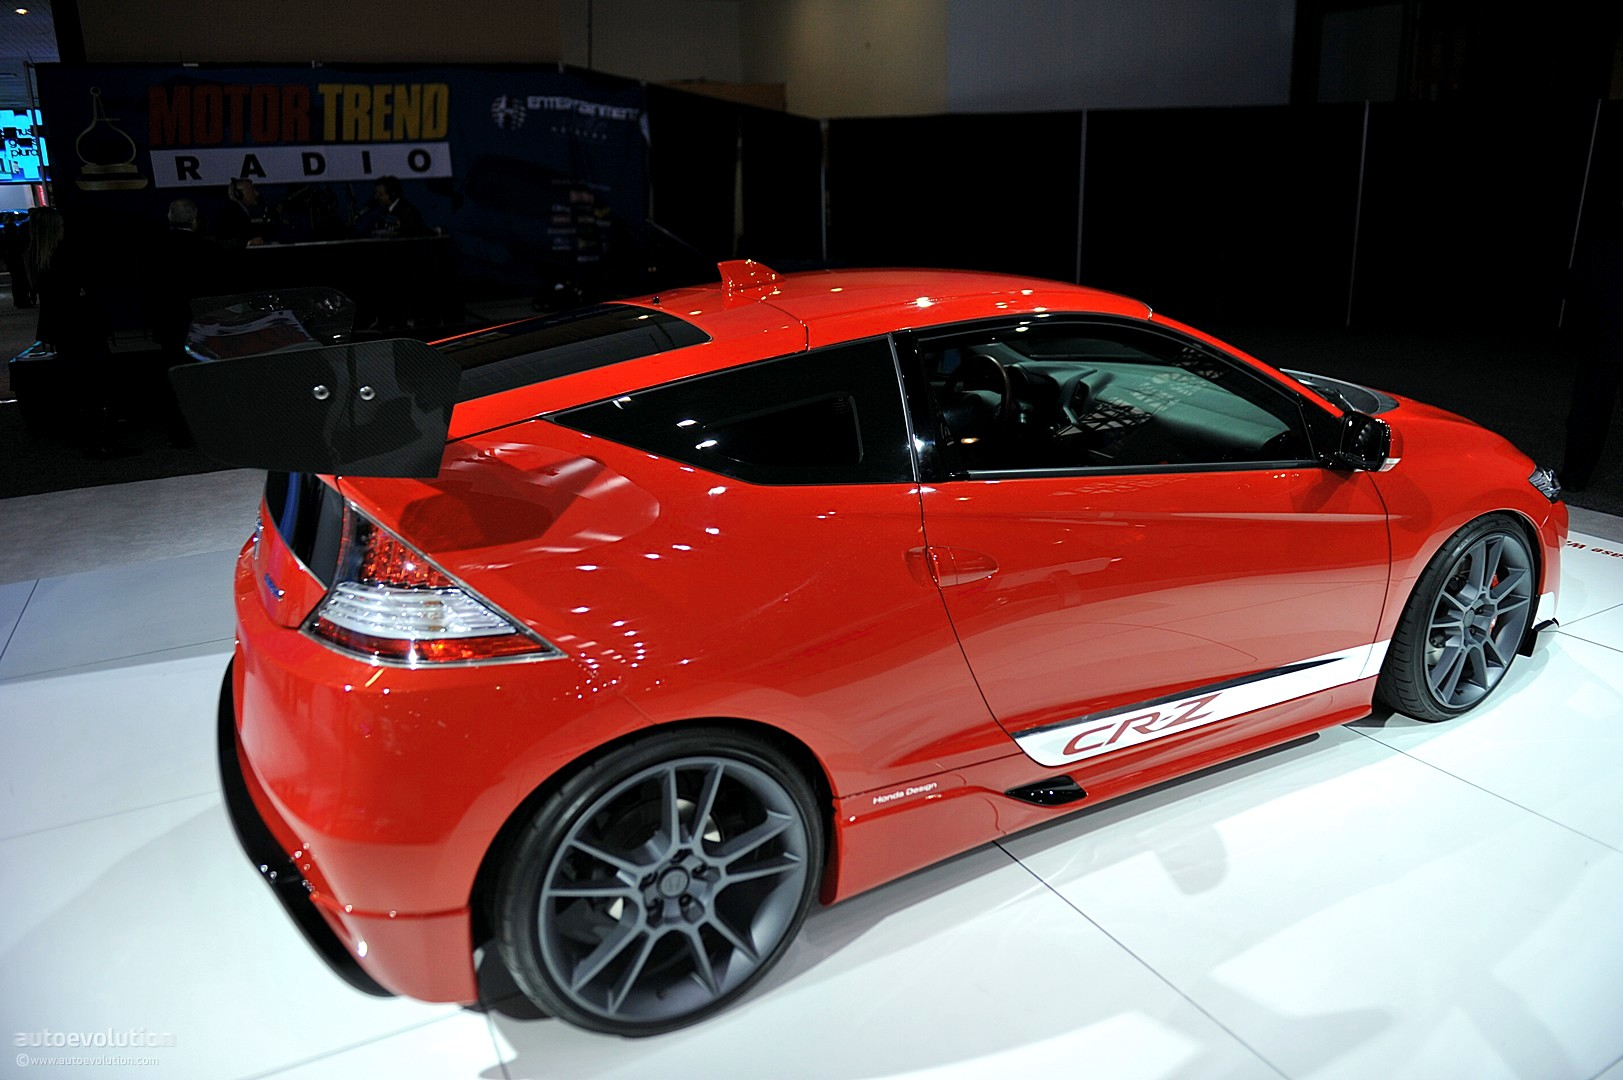 NYIAS 2011: Honda CR-Z Hybrid R Concept [Live Photos] - autoevolution